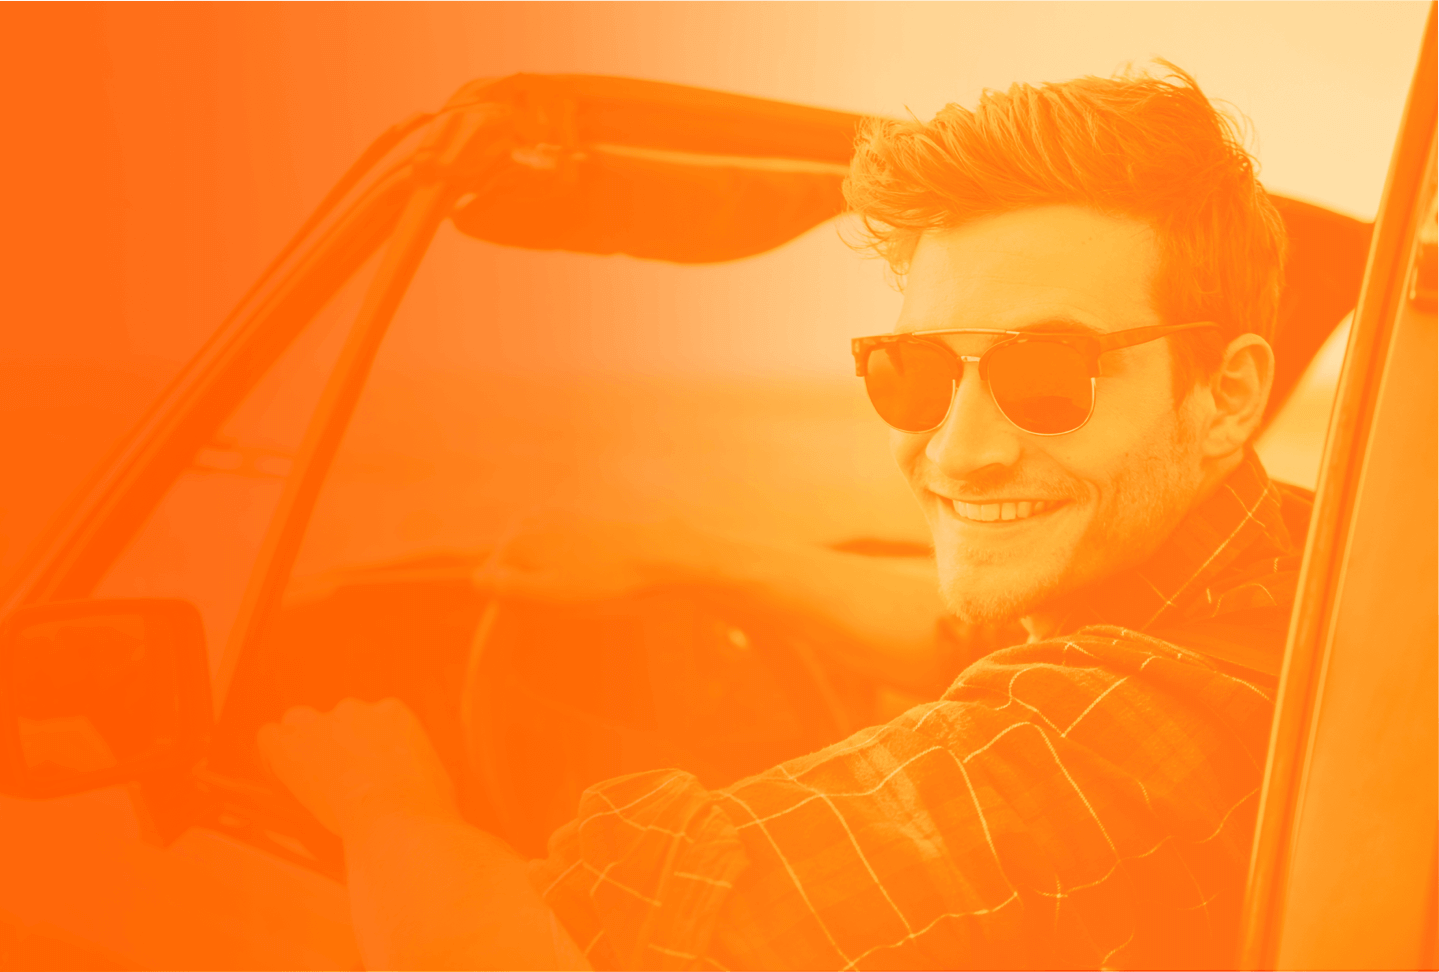 man smiling in a car